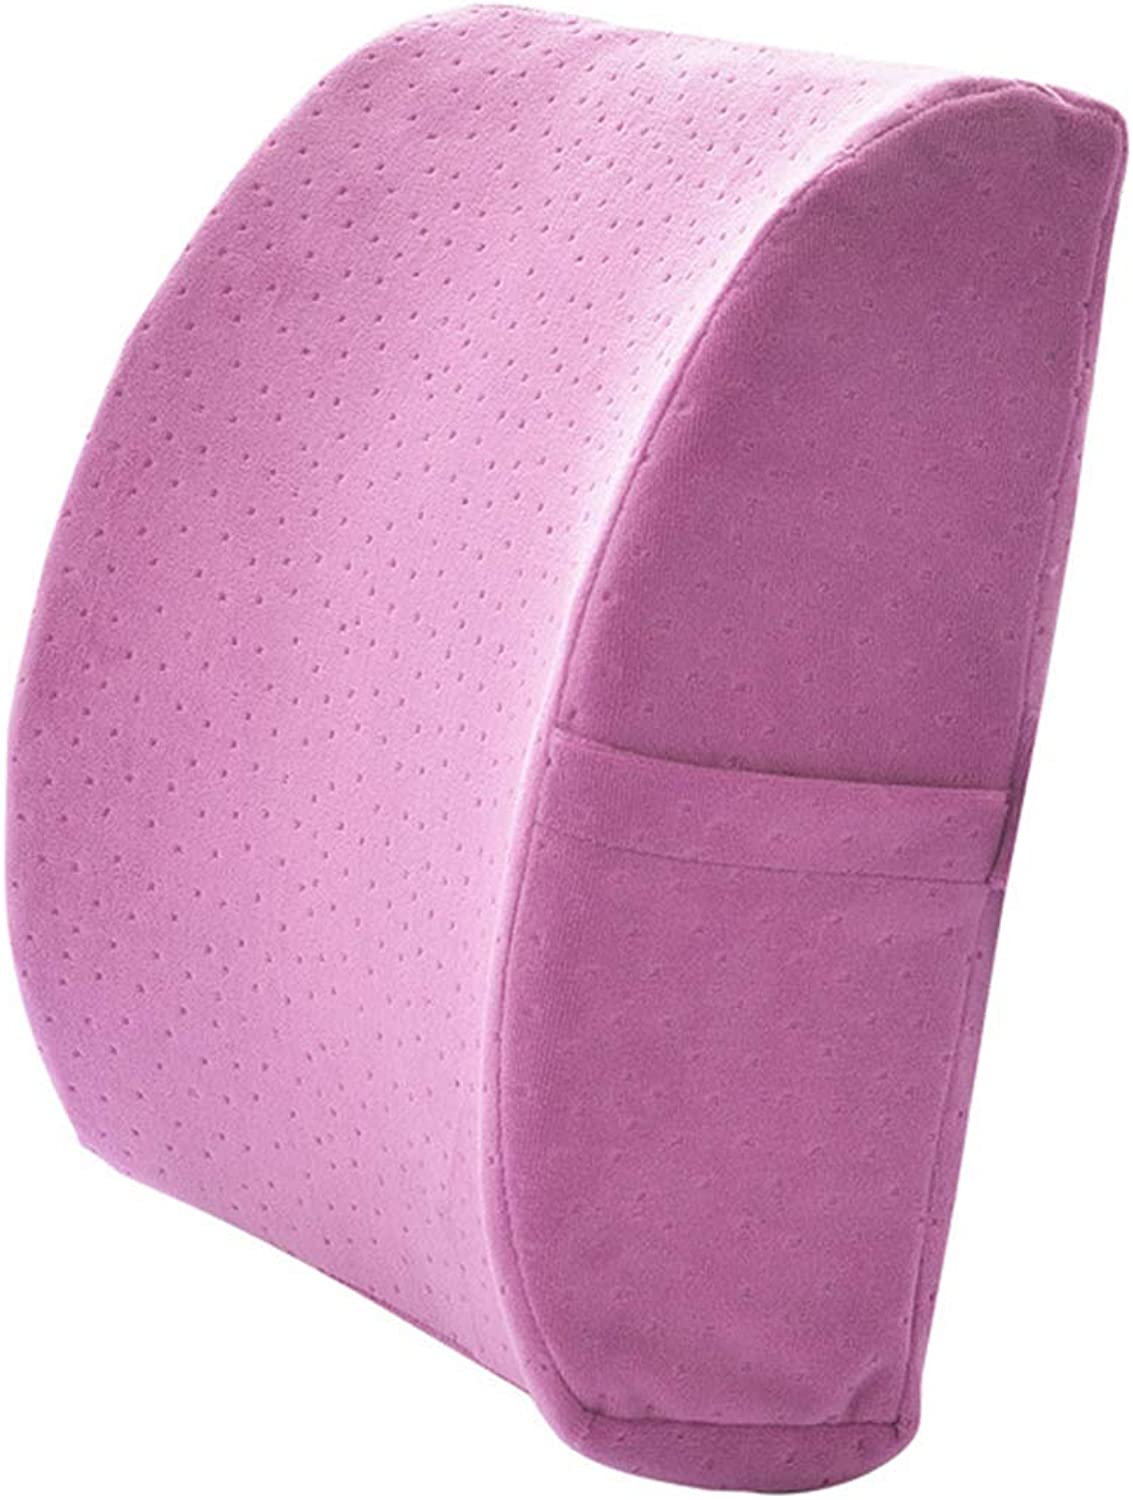 LIQICAI Memory Foam Lumbar Support Cushion Against Back Pain for Car Seat Office Chair, 4 colors Optional (color   Purple, Size   34x32x12cm)